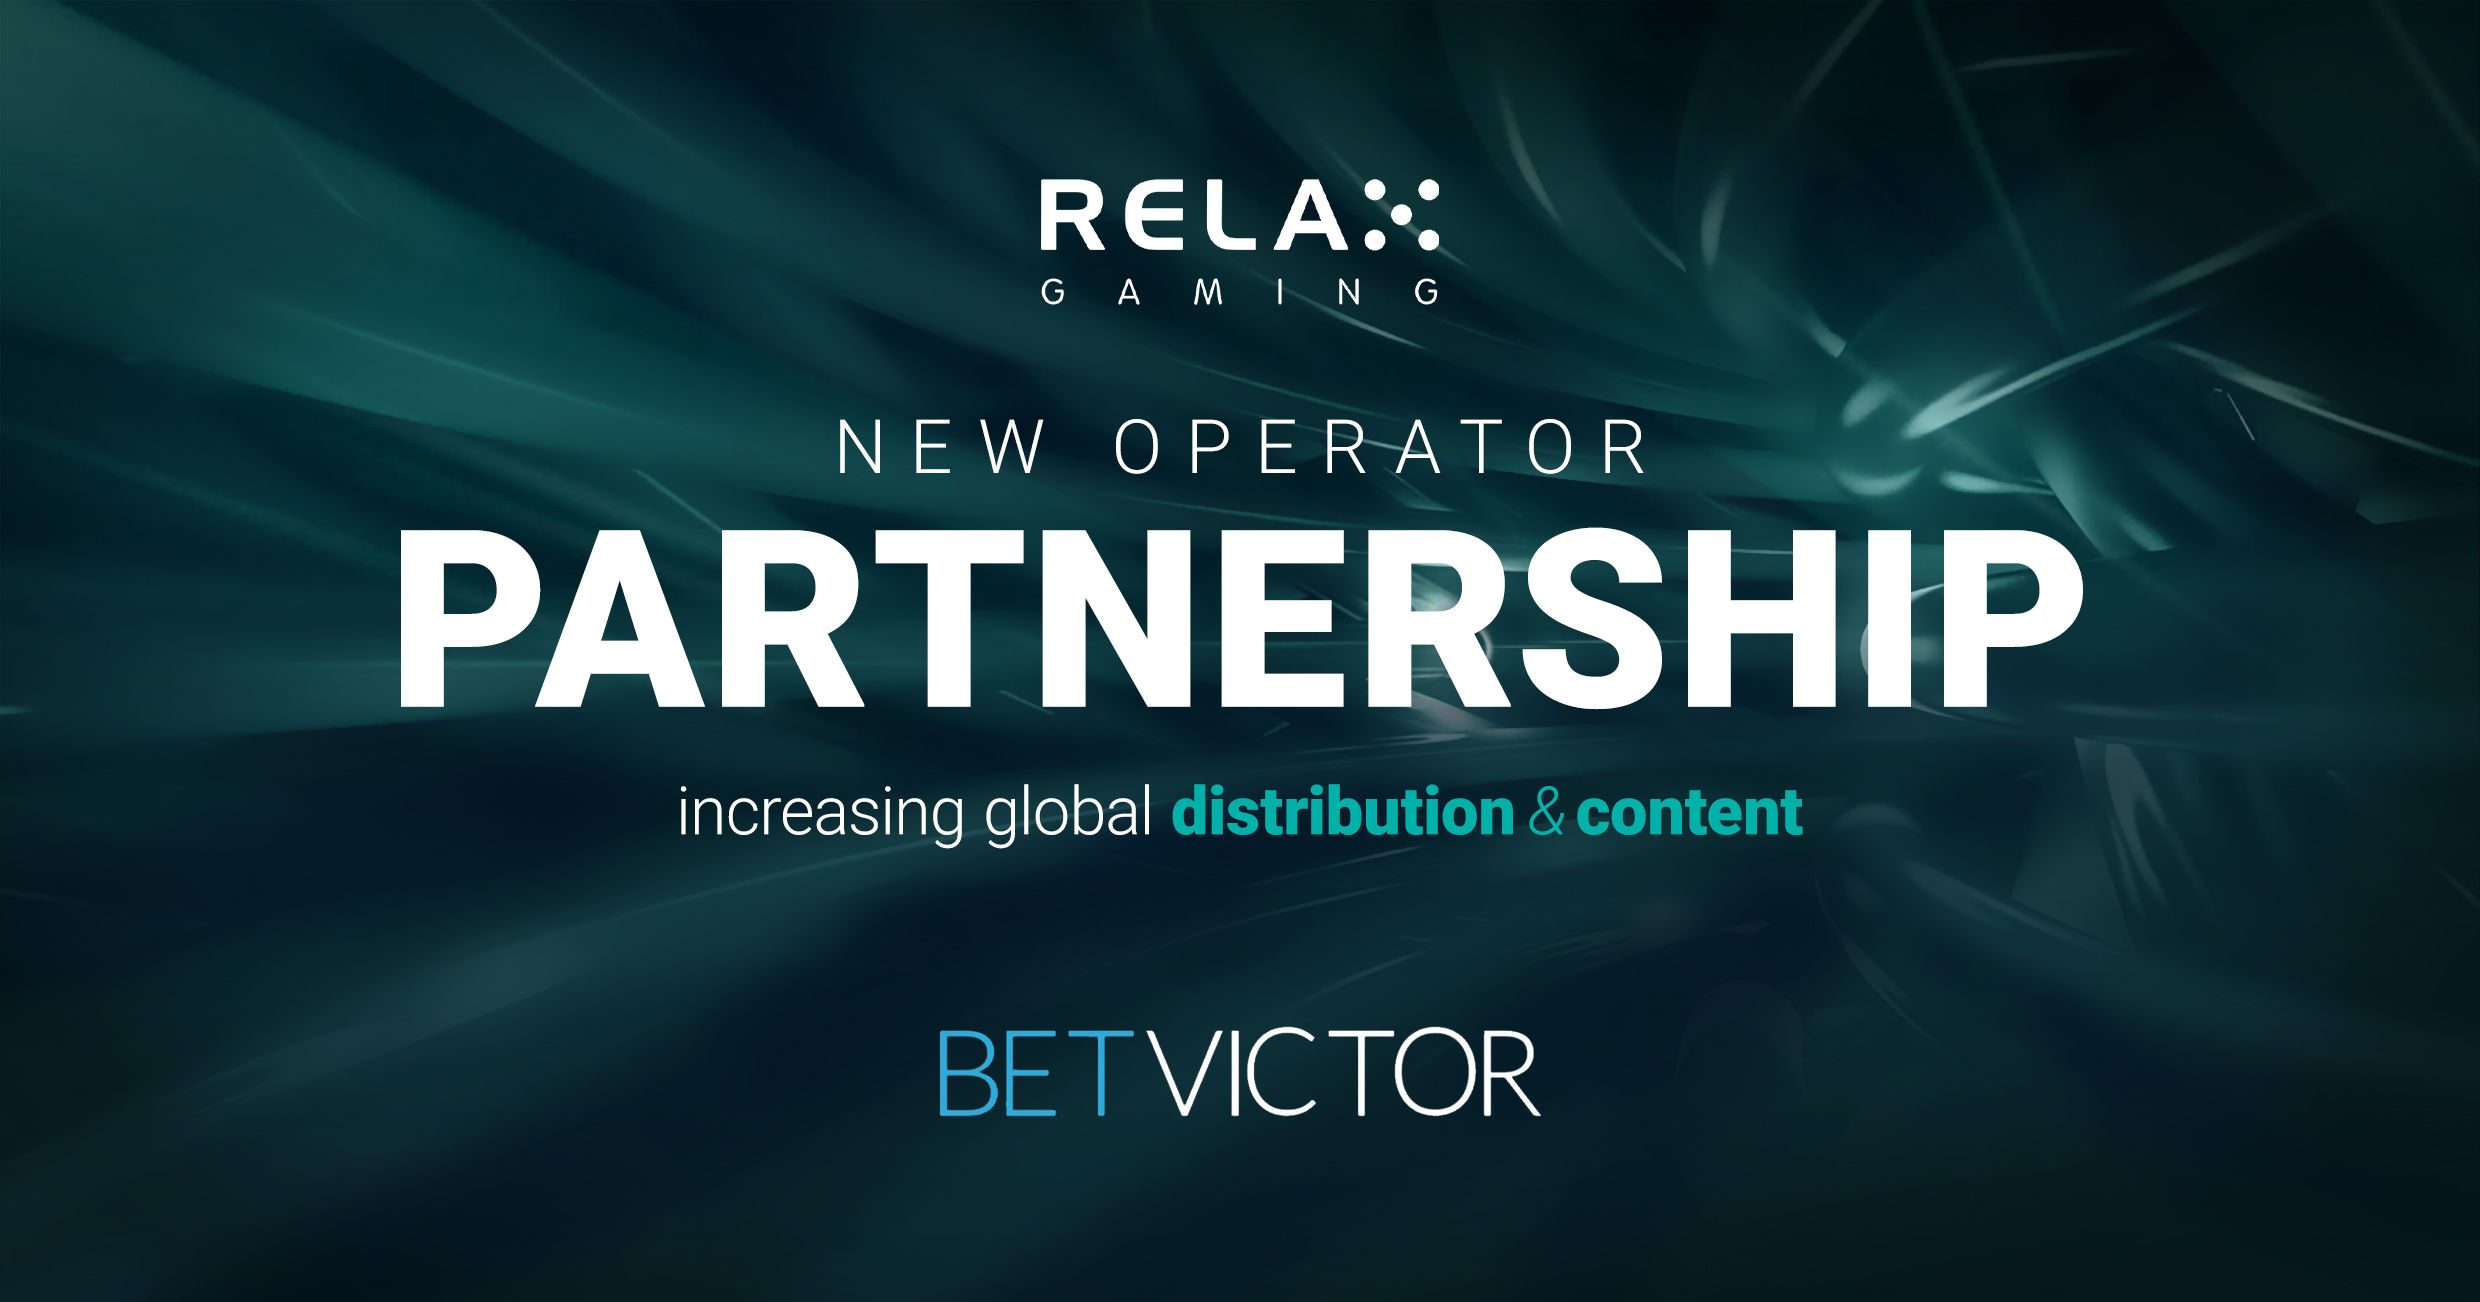 Relax Gaming signs international deal with BetVictor